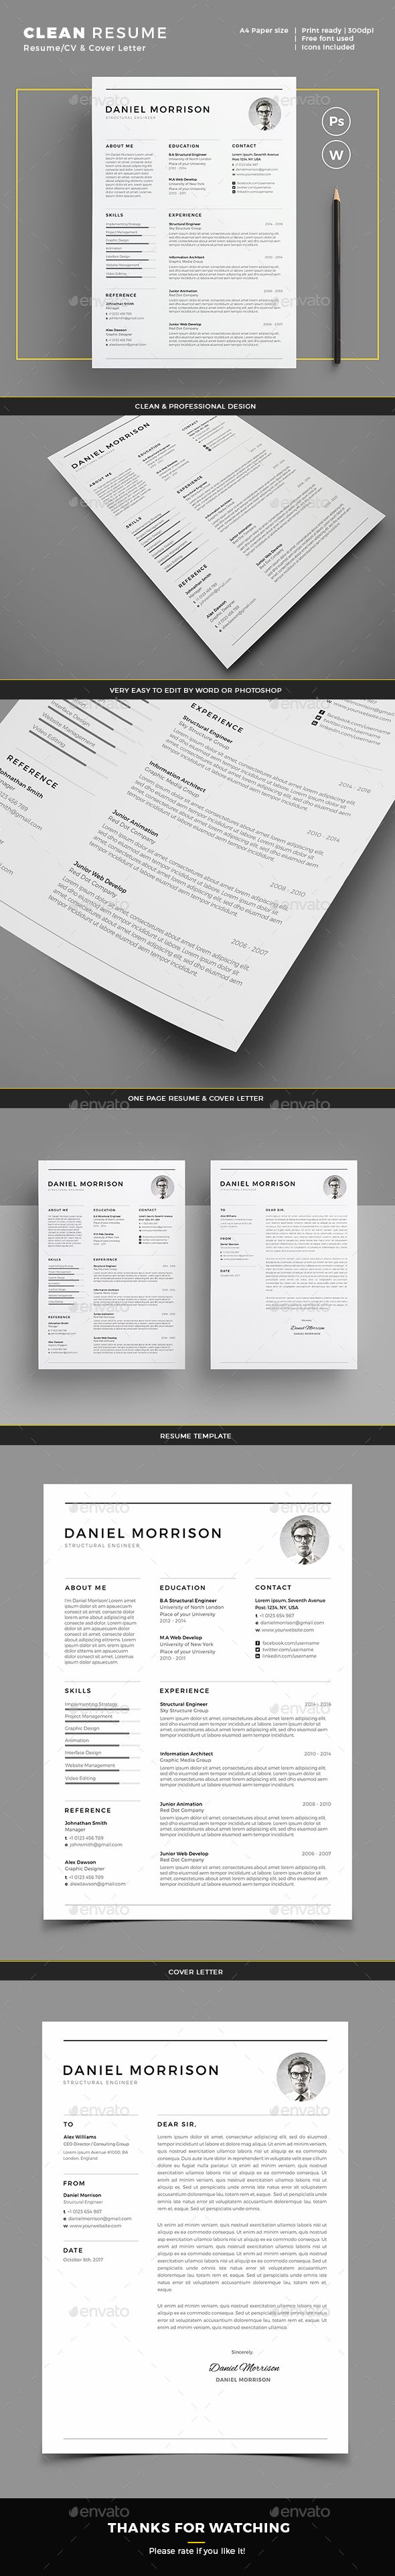 Clean Resume Download%0A  simple  clean  creative  Resume  template   professional  minimal Resumes